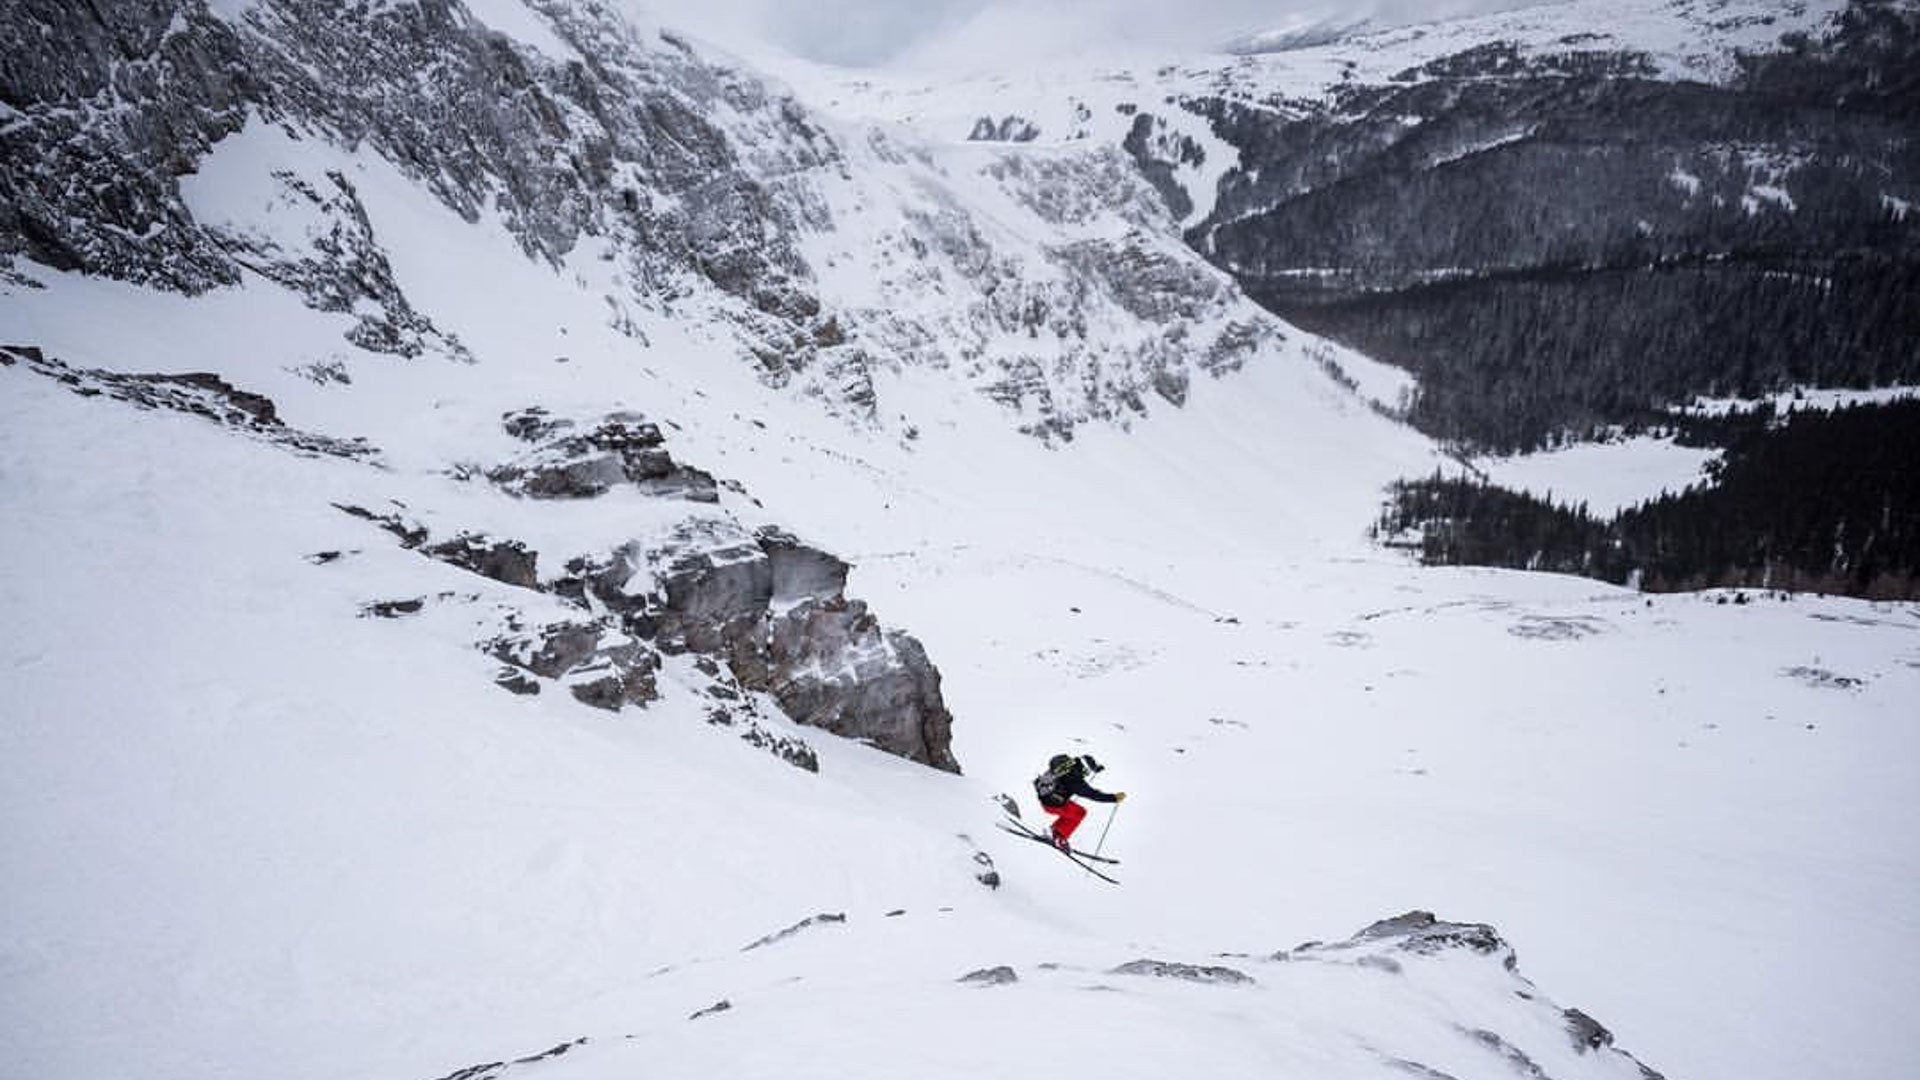 Skier in Delirium Dive. Photo by Will Lambert.